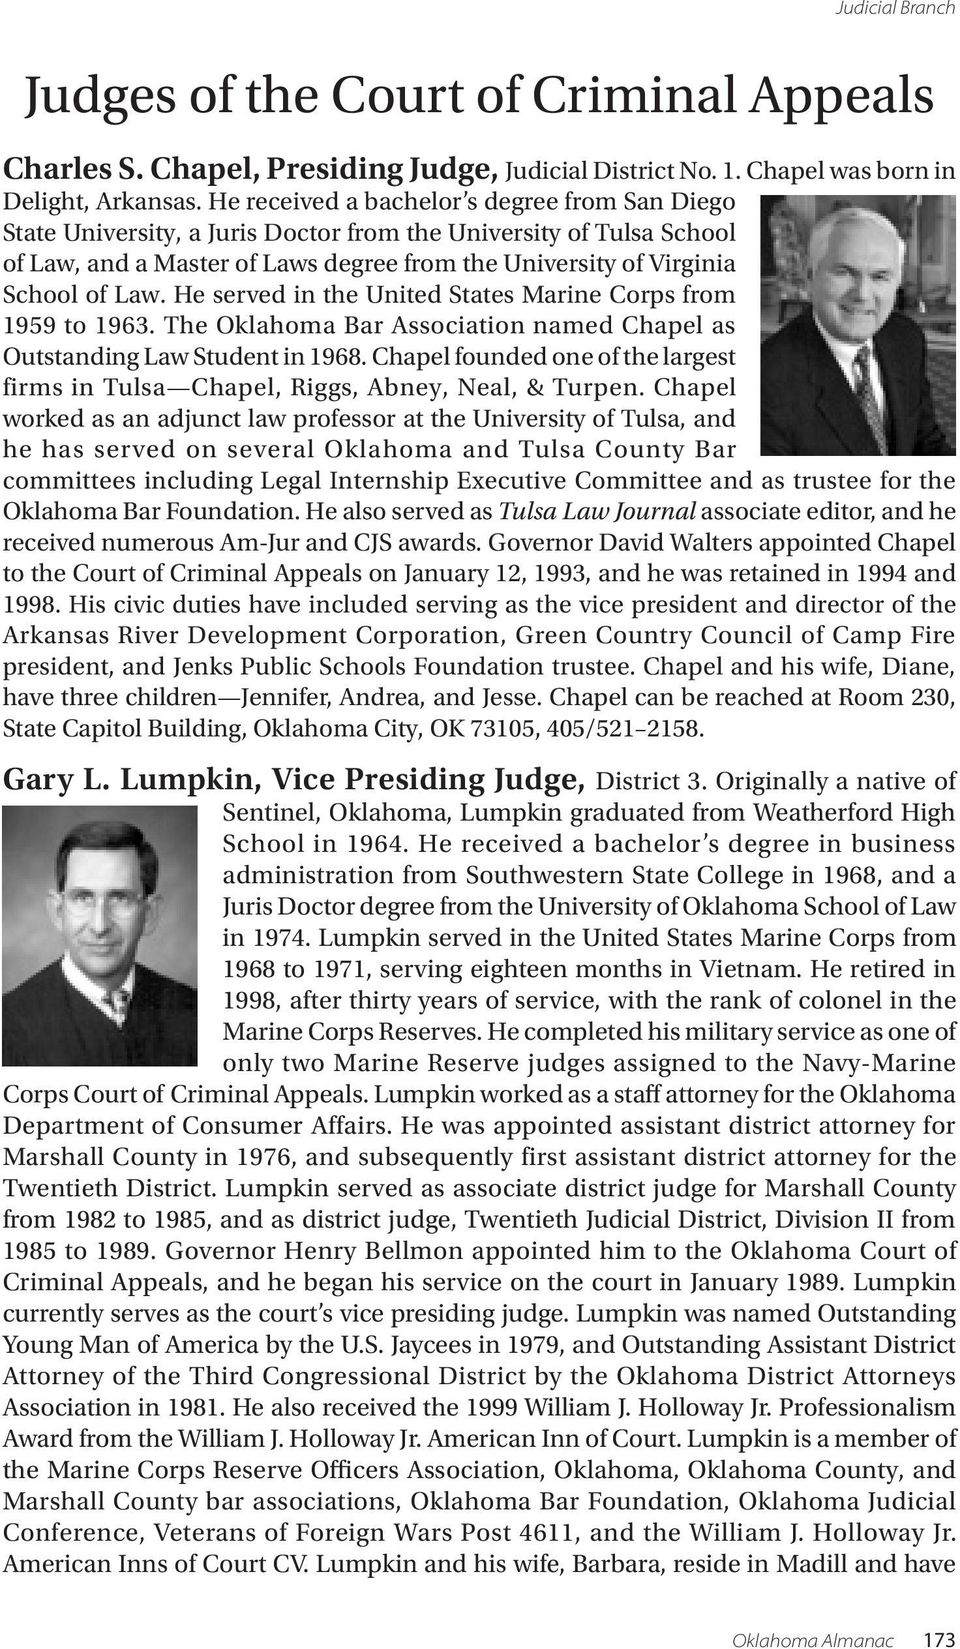 He served in the United States Marine Corps from 1959 to 1963. The Oklahoma Bar Association named Chapel as Outstanding Law Student in 1968.